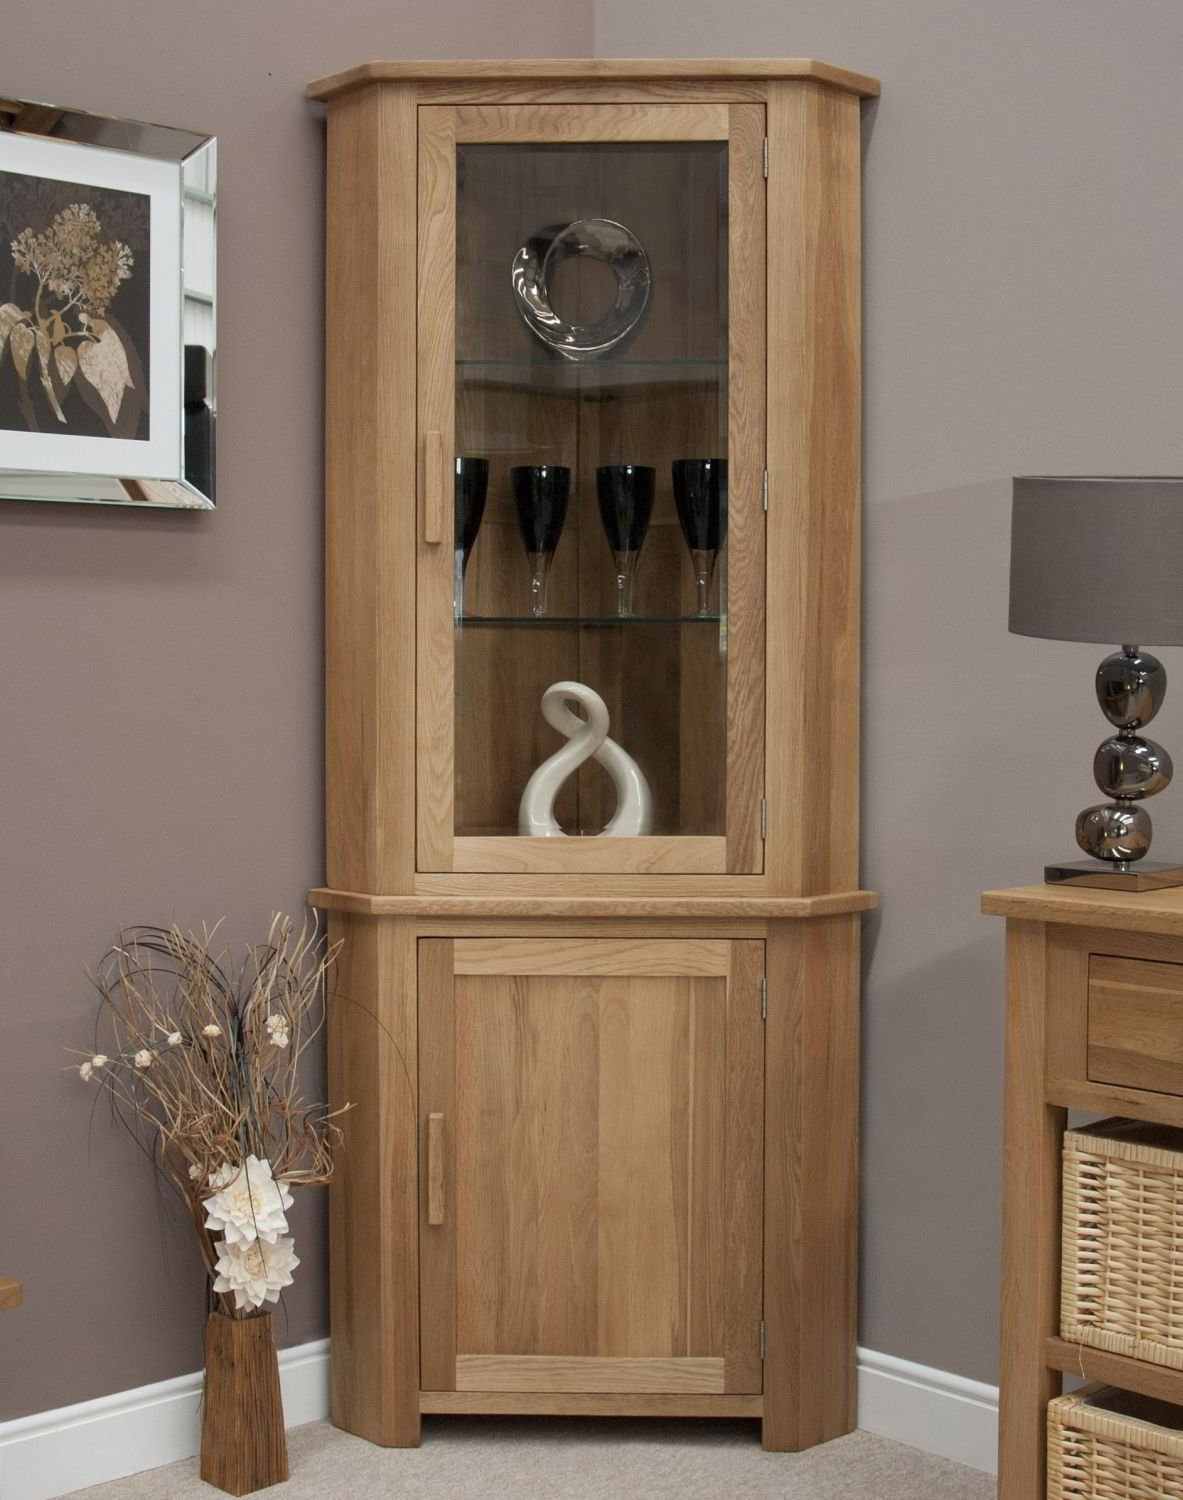 eton solid oak furniture corner display cabinet unit with lightamazoncouk kitchen  home. eton solid oak furniture corner display cabinet unit with light